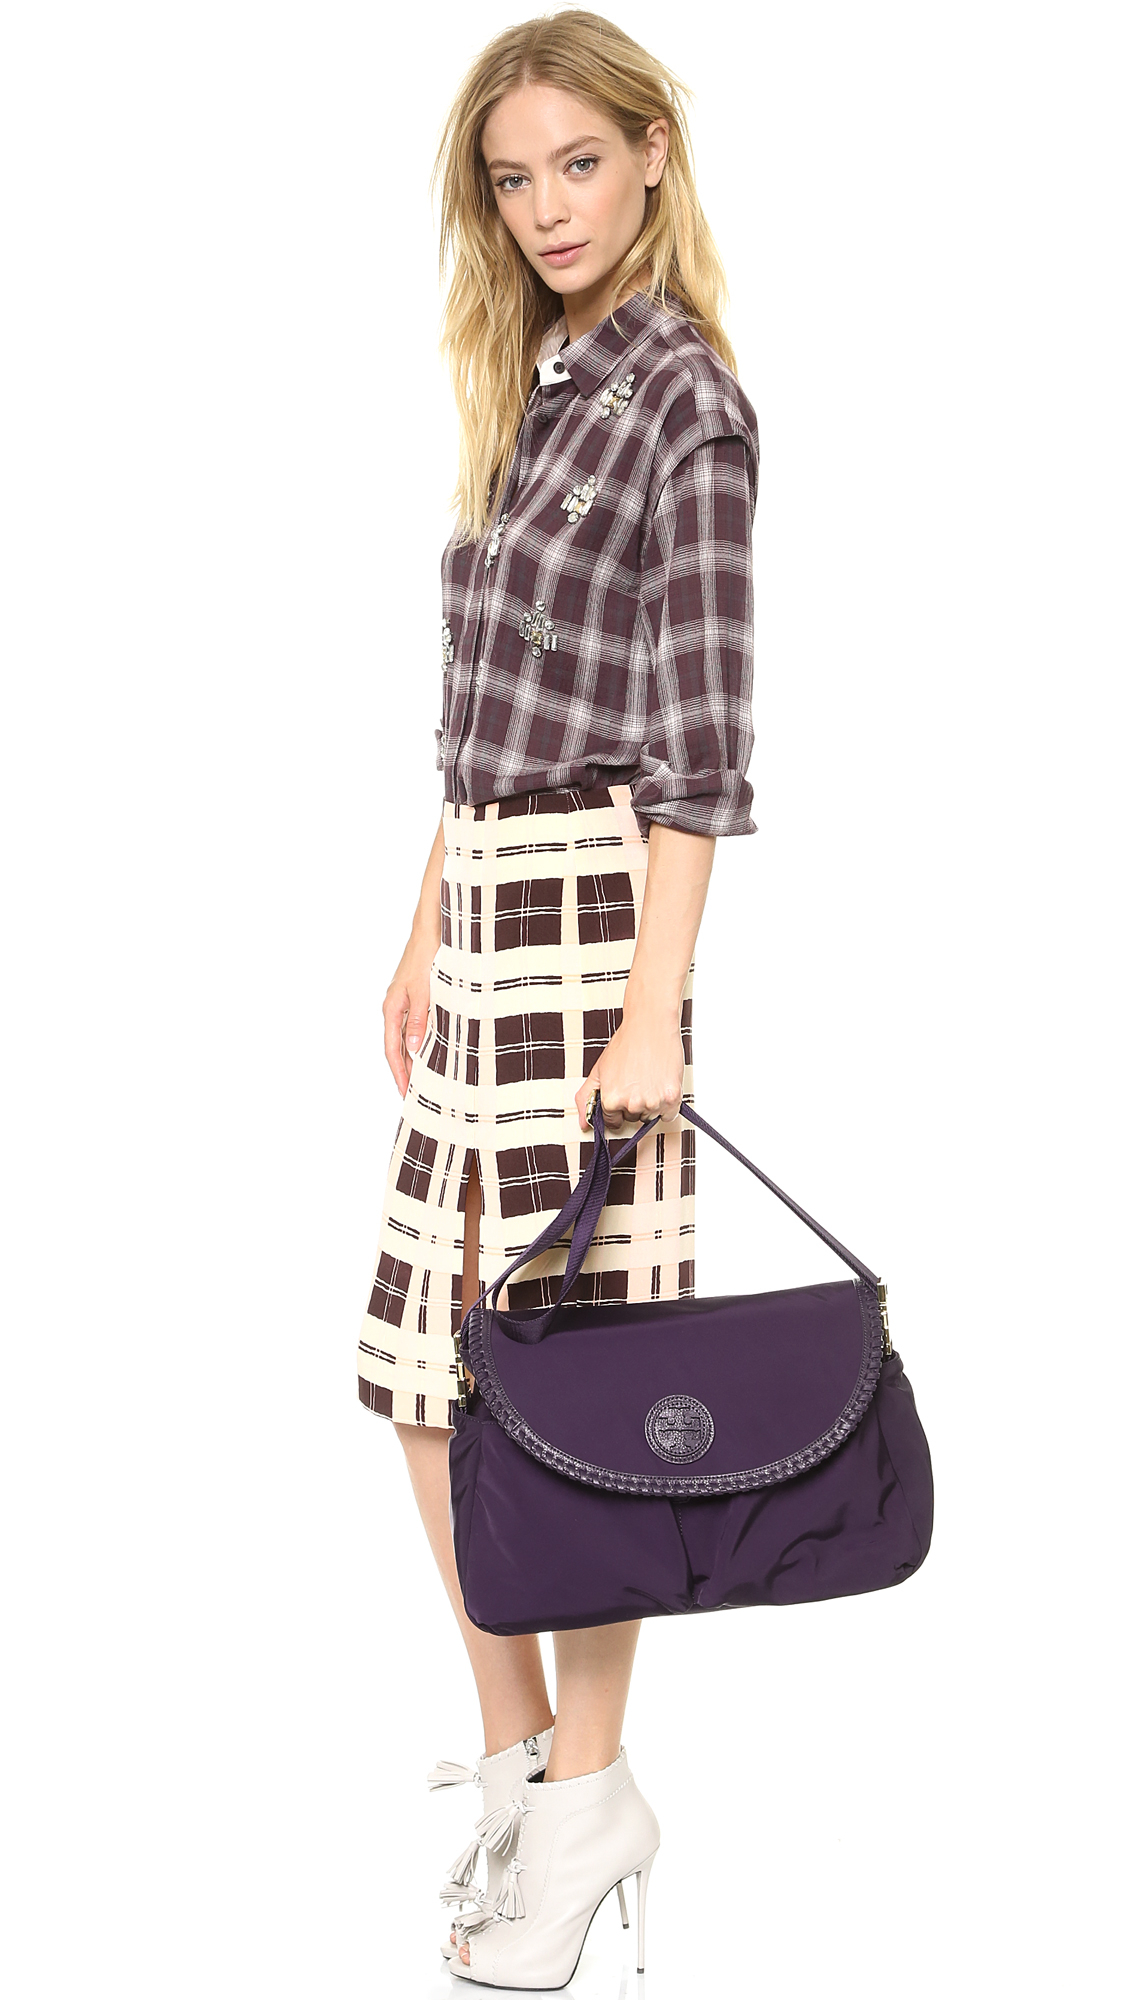 Lyst Tory Burch Marion Nylon Baby Bag Blue Ink In Purple